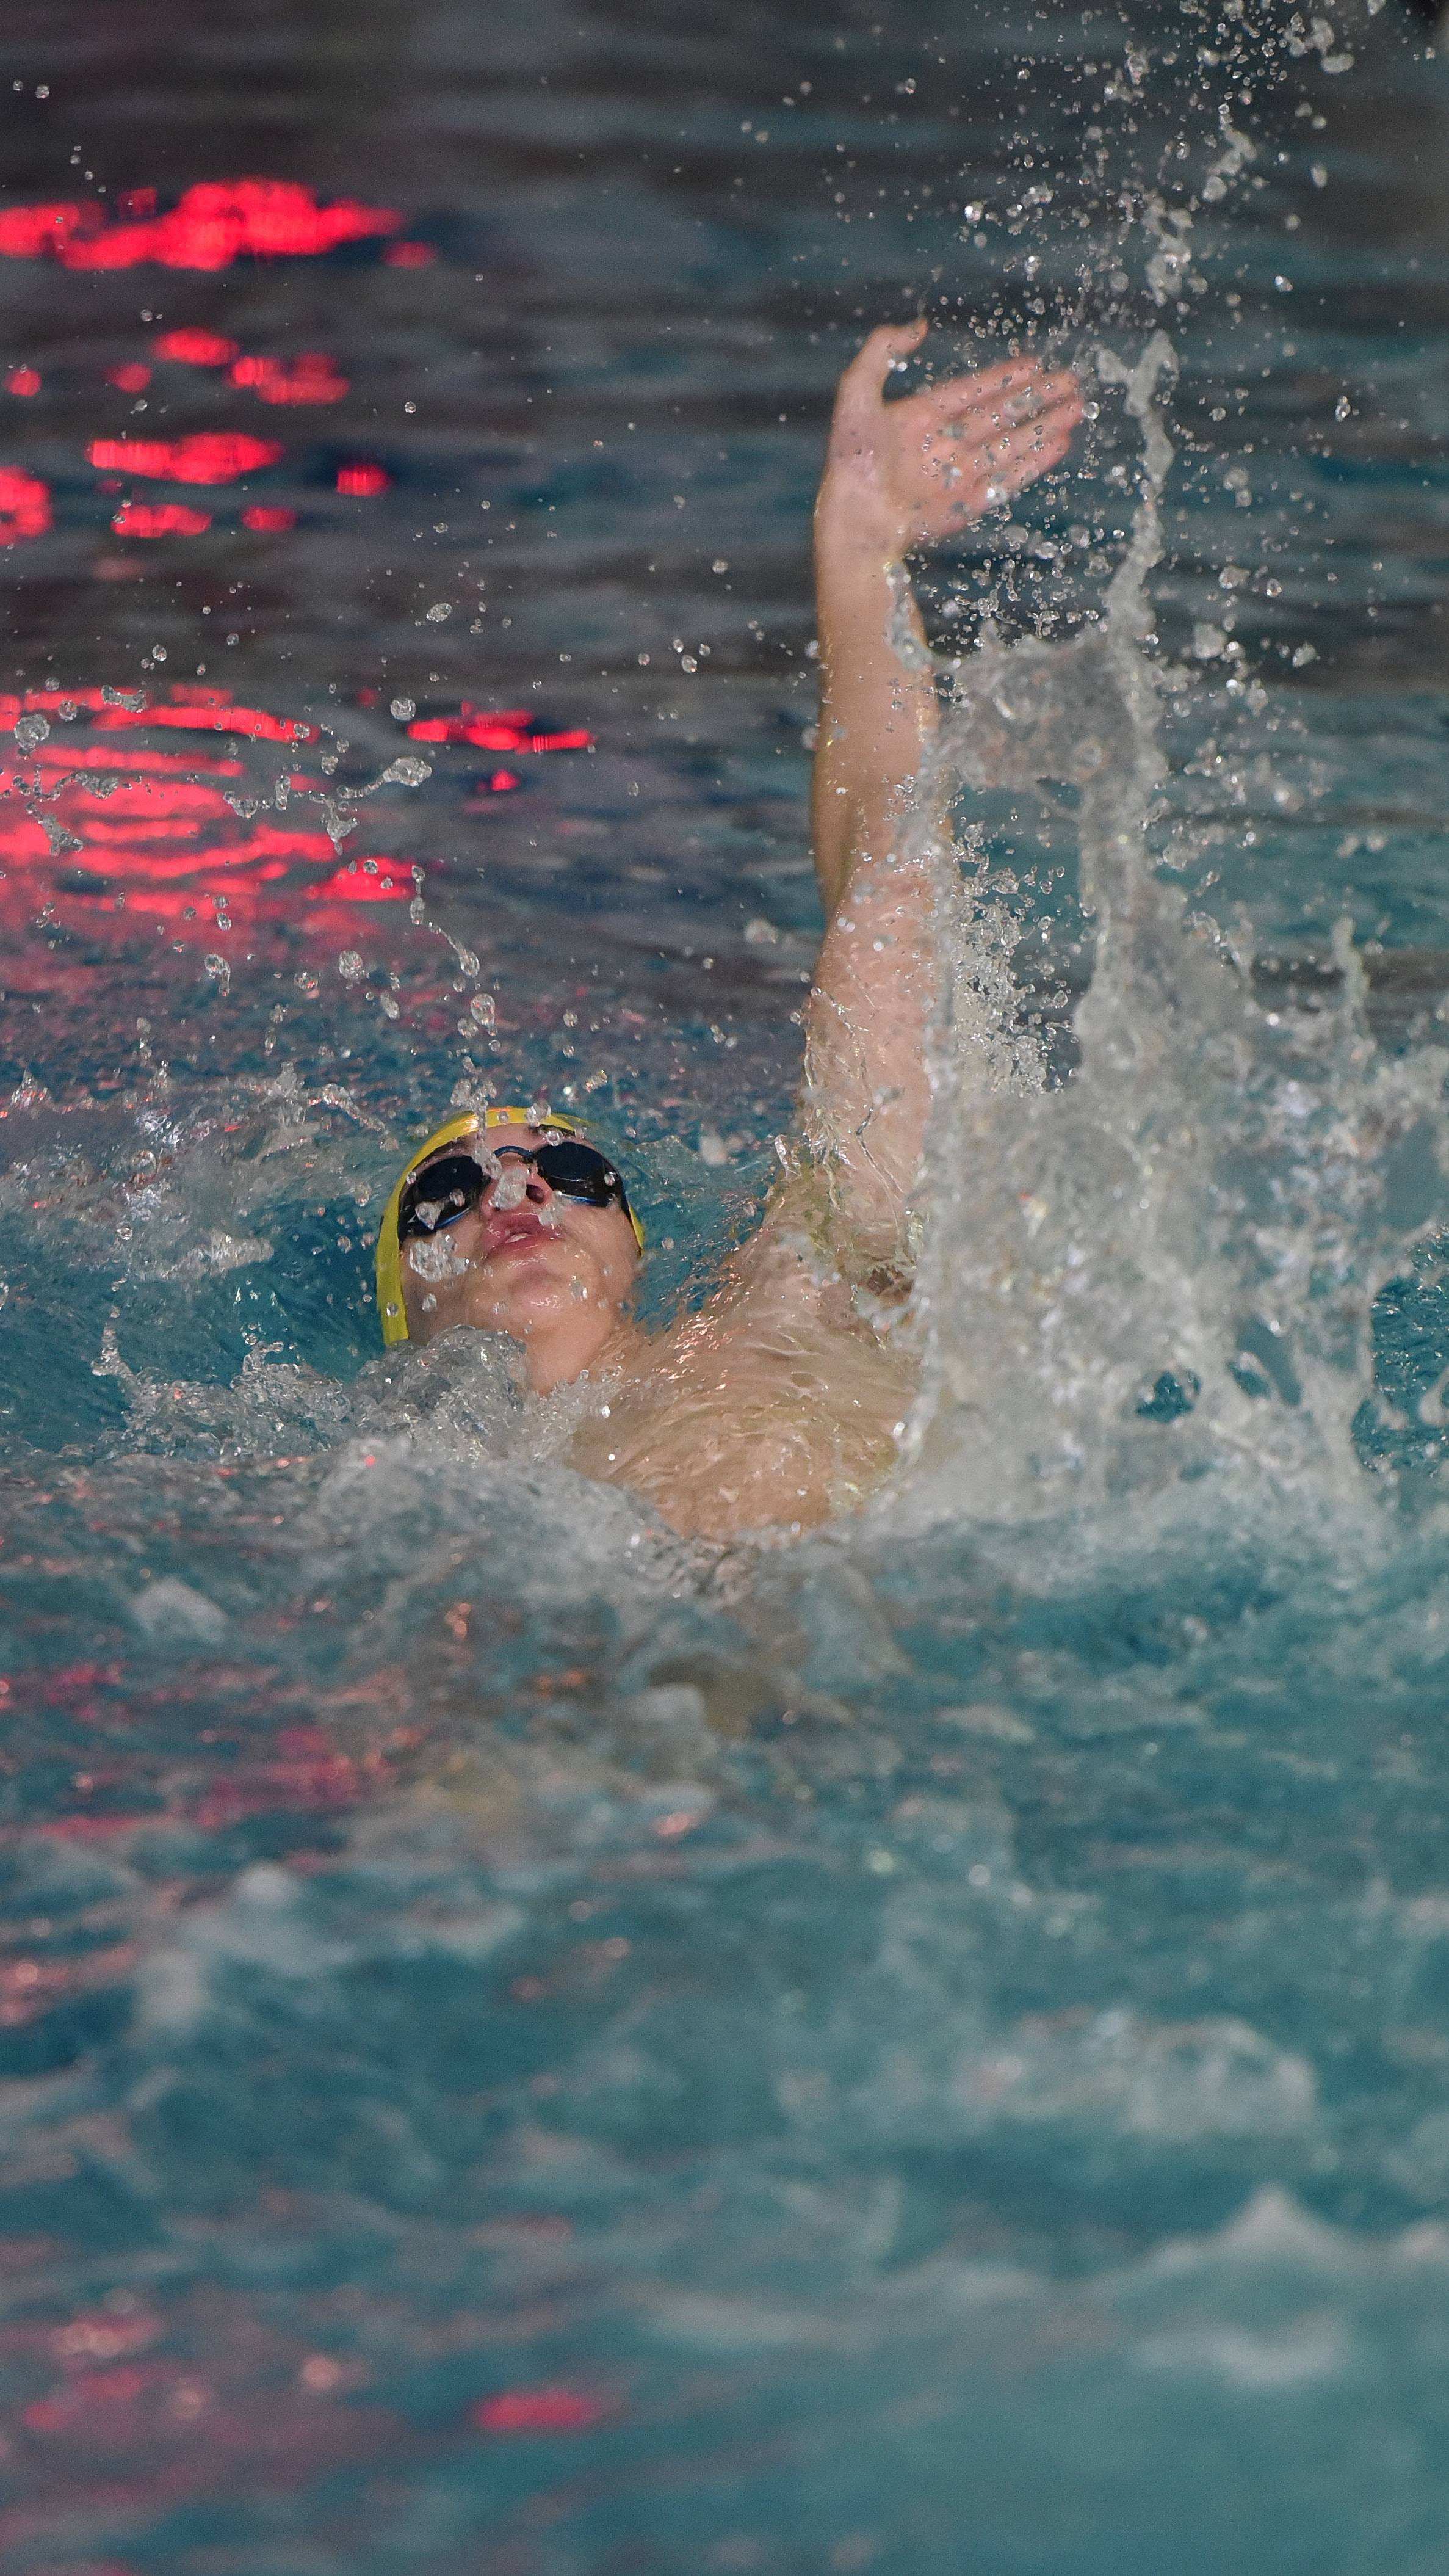 Cameron Casey of Neuqua Valley swims the 400 yard individual relay during the West Chicago Relays boys swimming invitational Saturday.